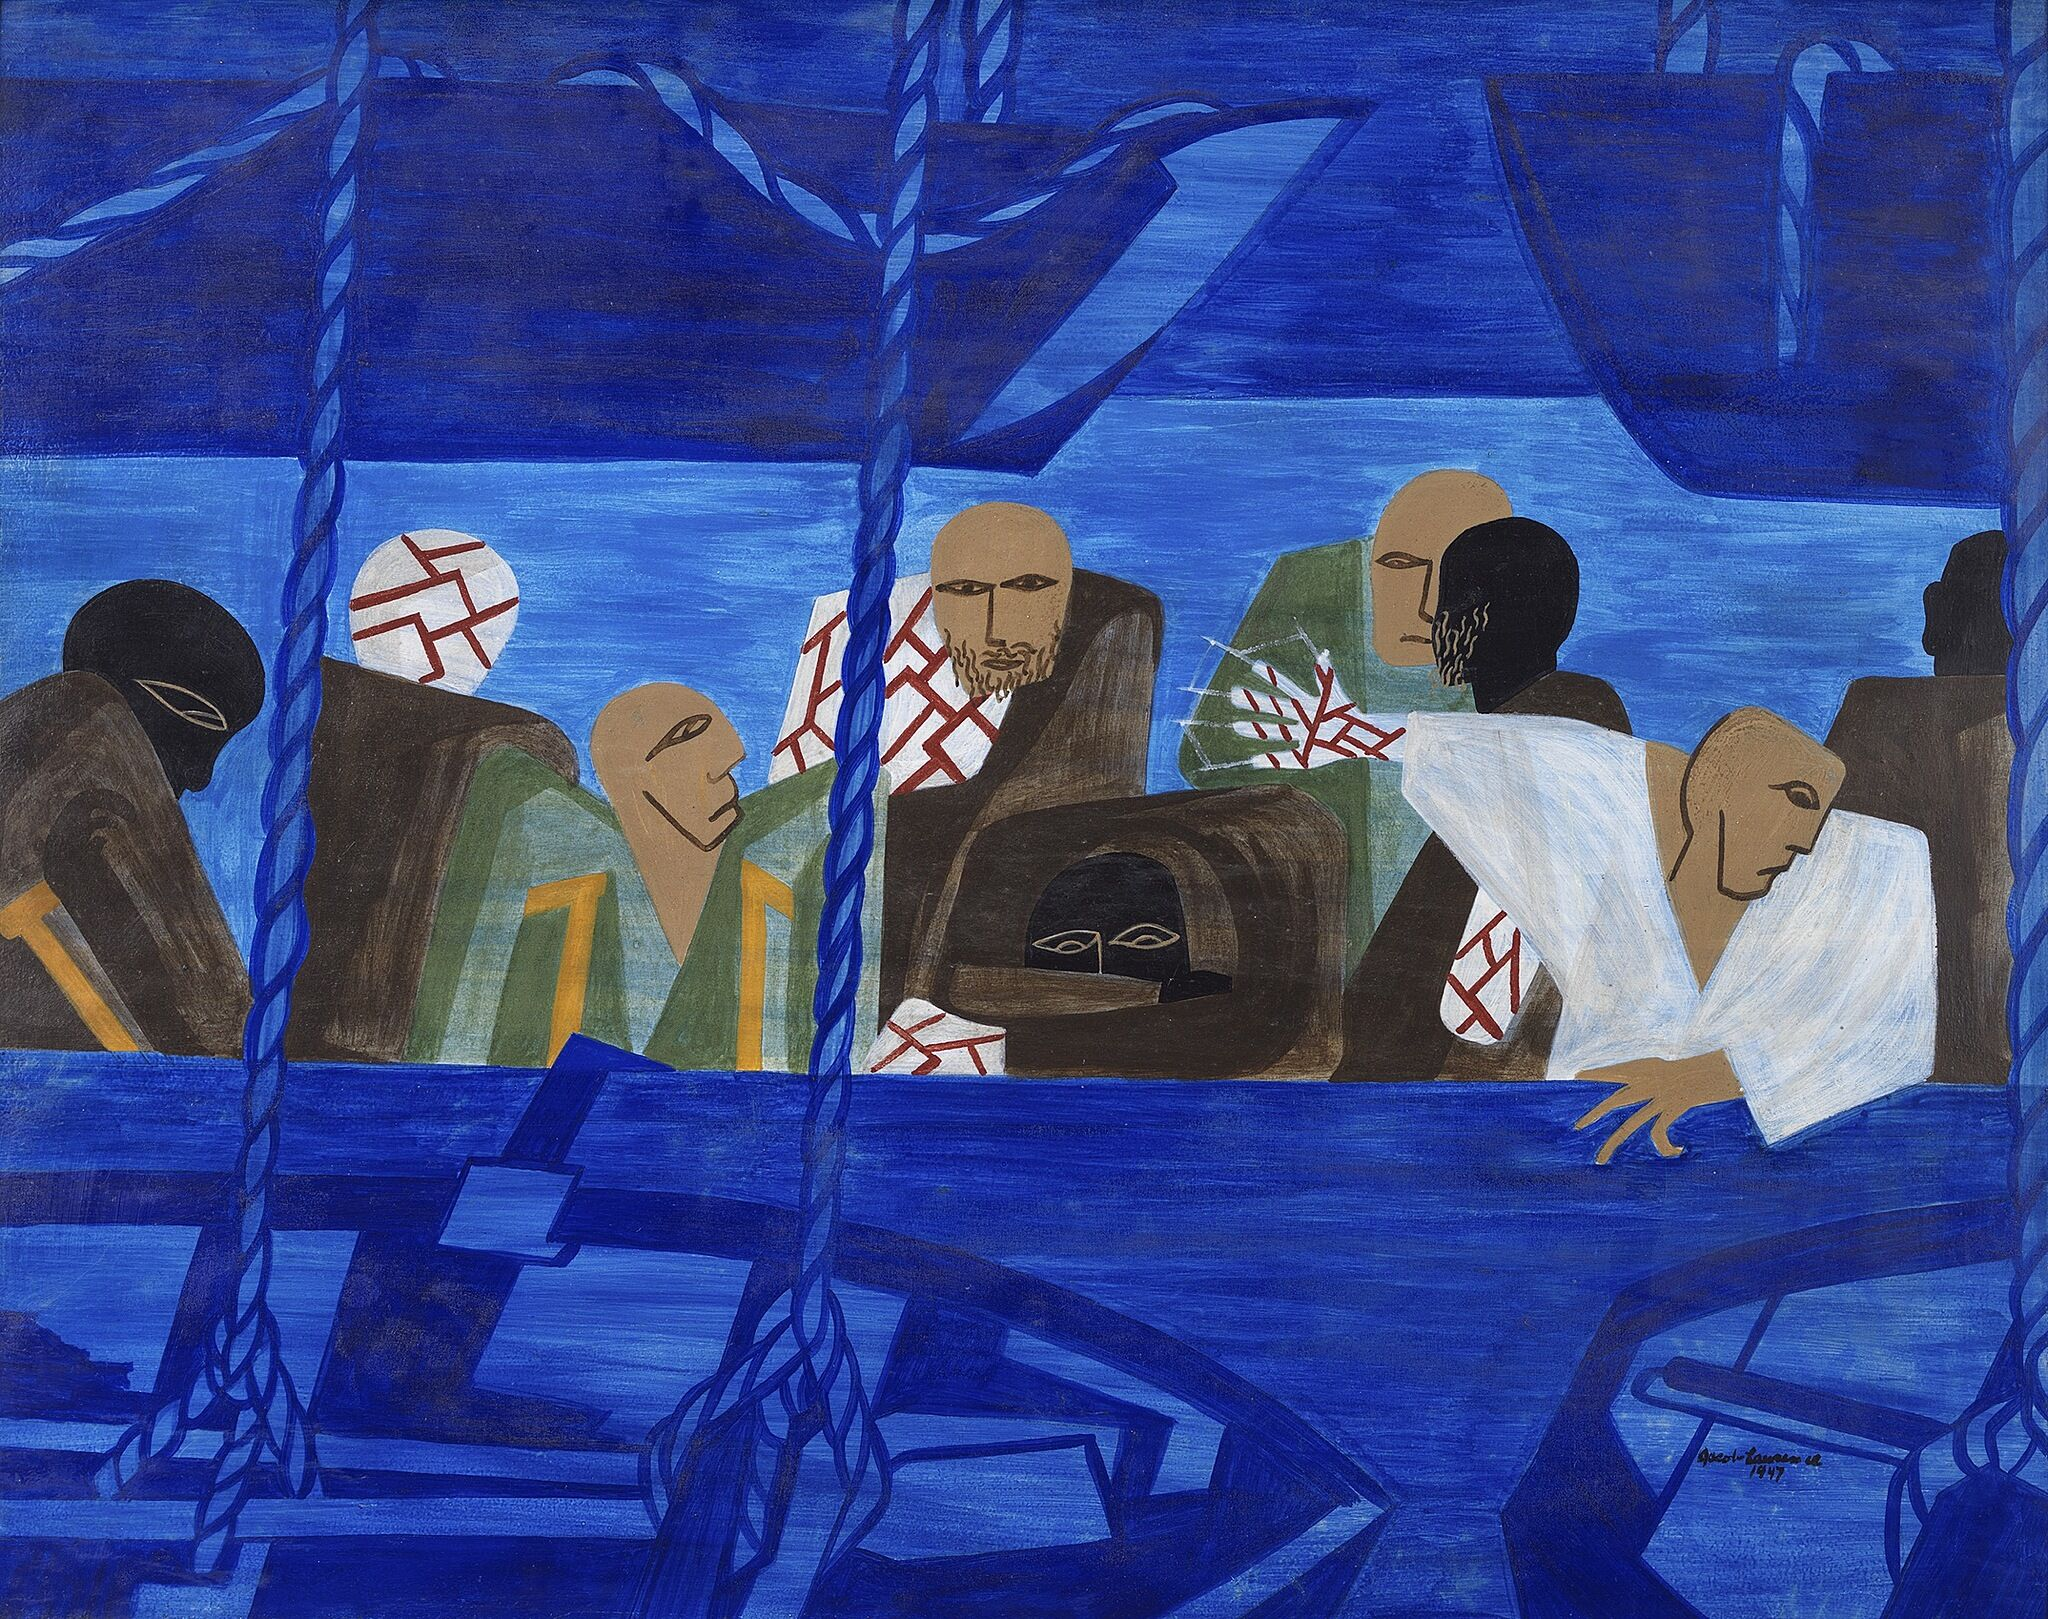 A painting of people on a boat